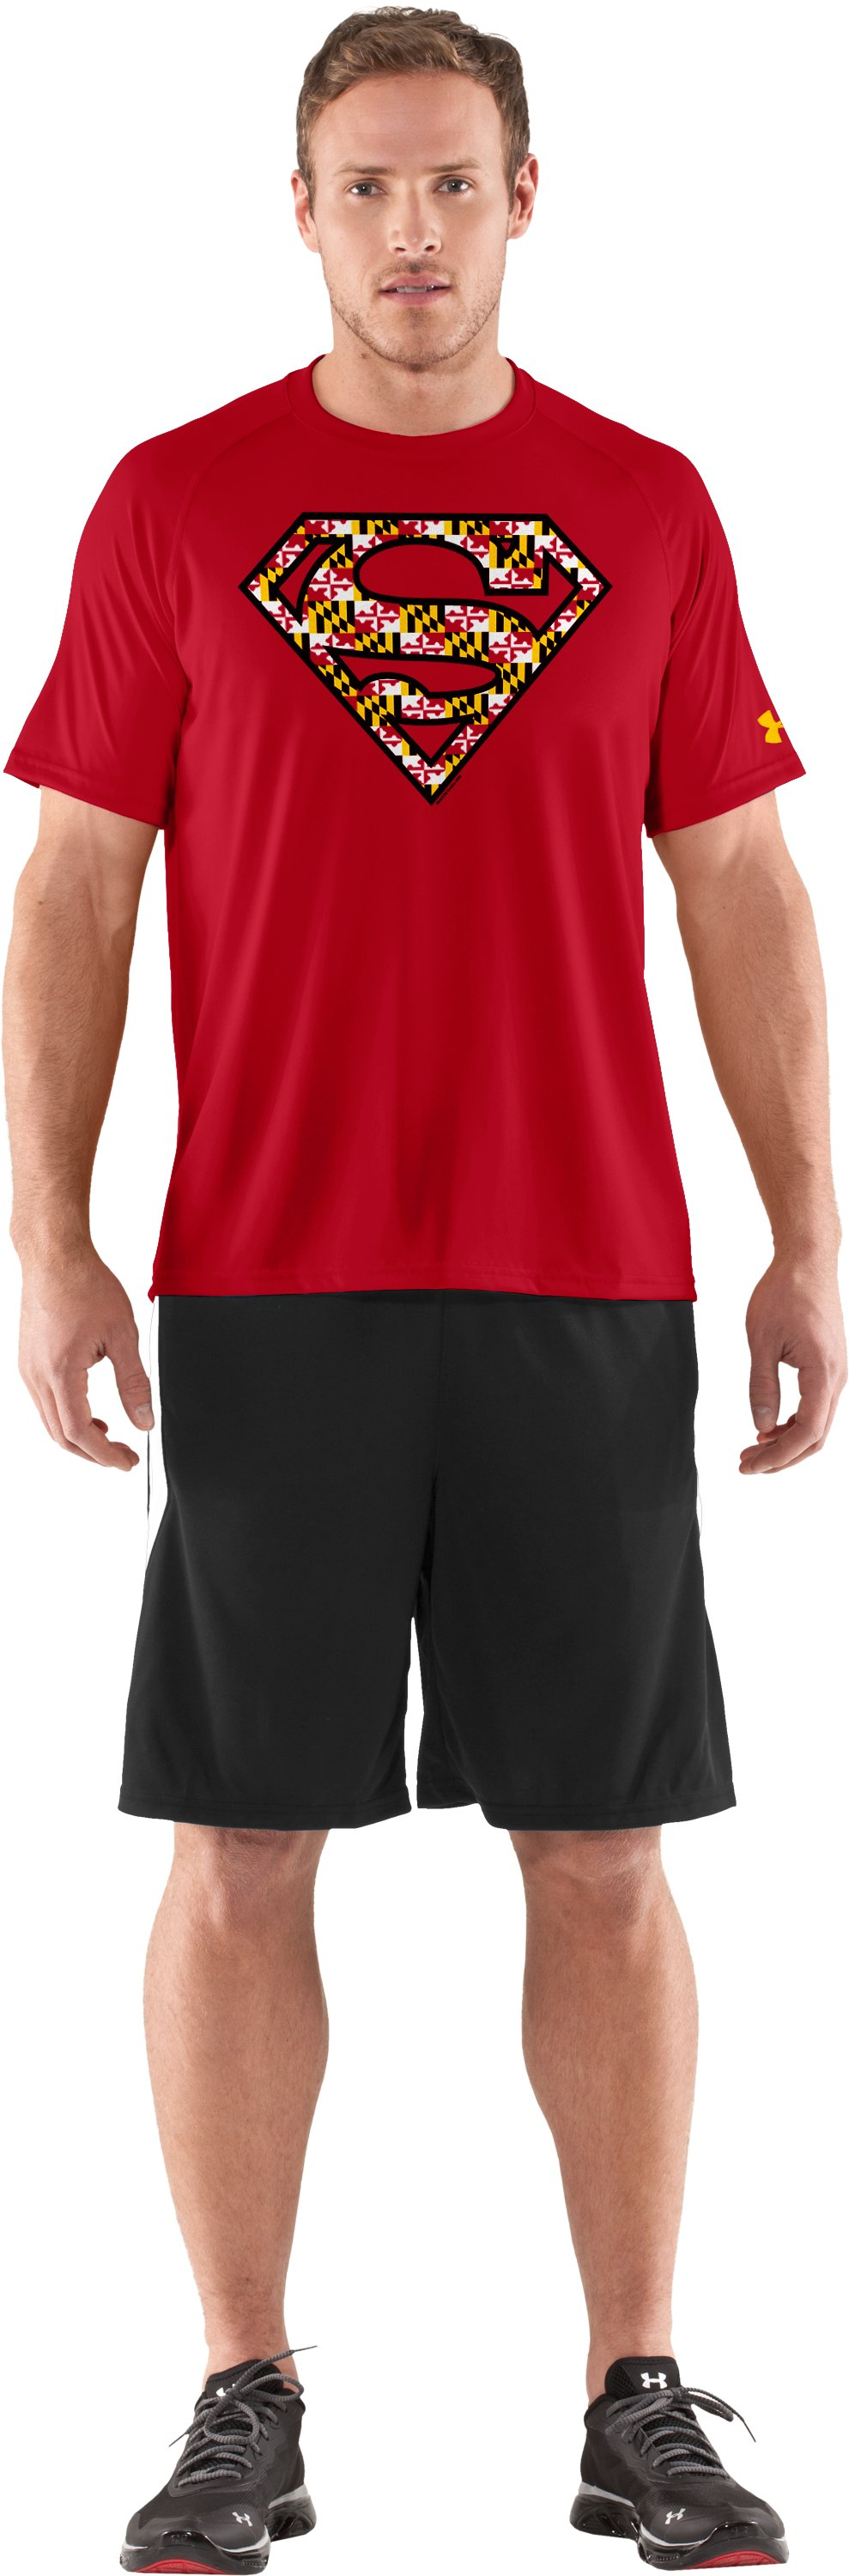 Men's Under Armour® Alter Ego Maryland Superman T-Shirt, Red, zoomed image